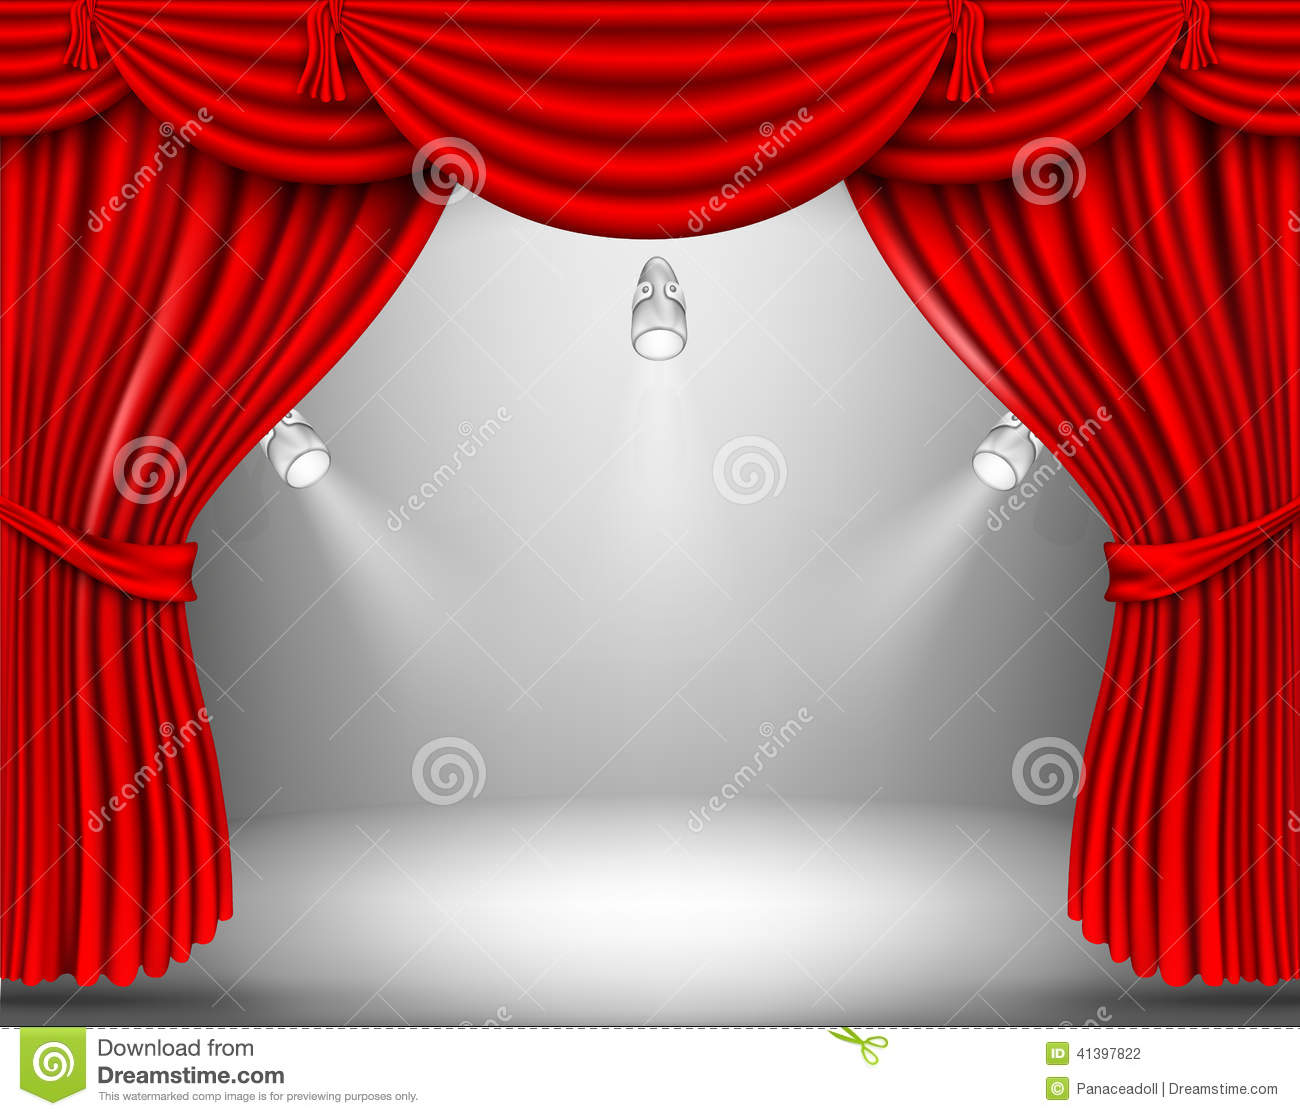 Red stage curtain with lights - Red Curtain With Lights Stock Photography